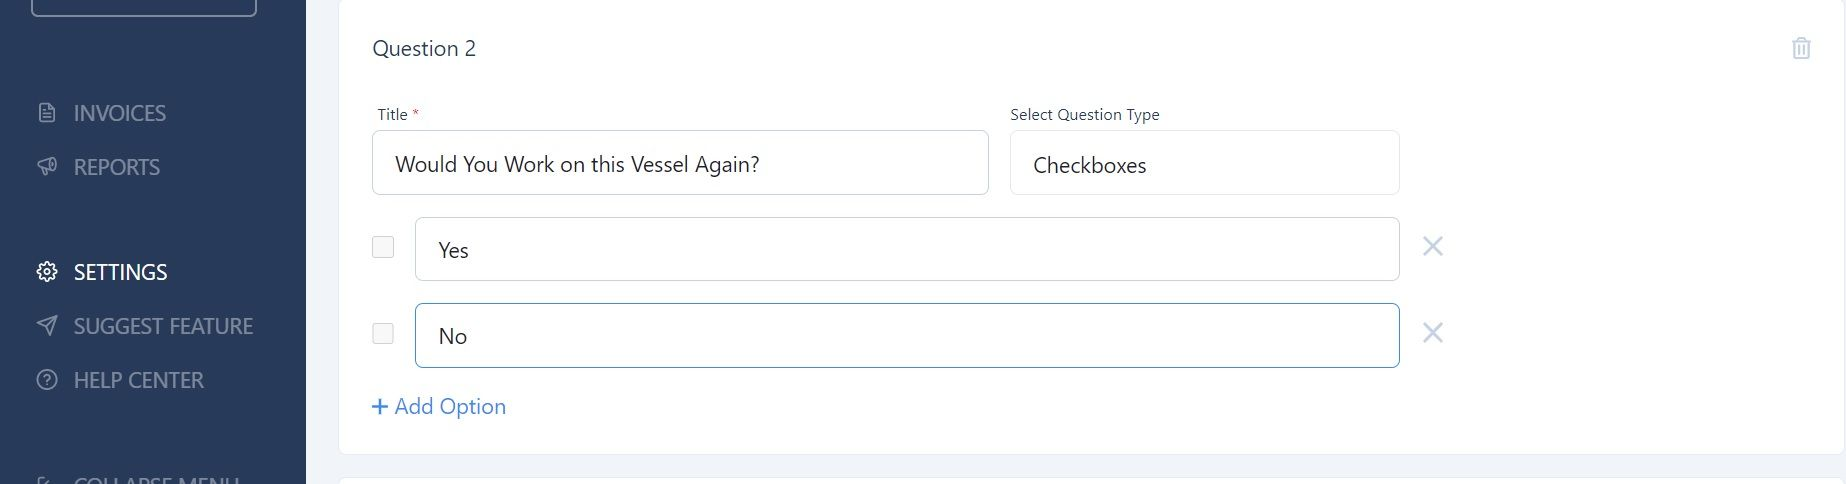 screenshot of Martide website showing how to enter a question